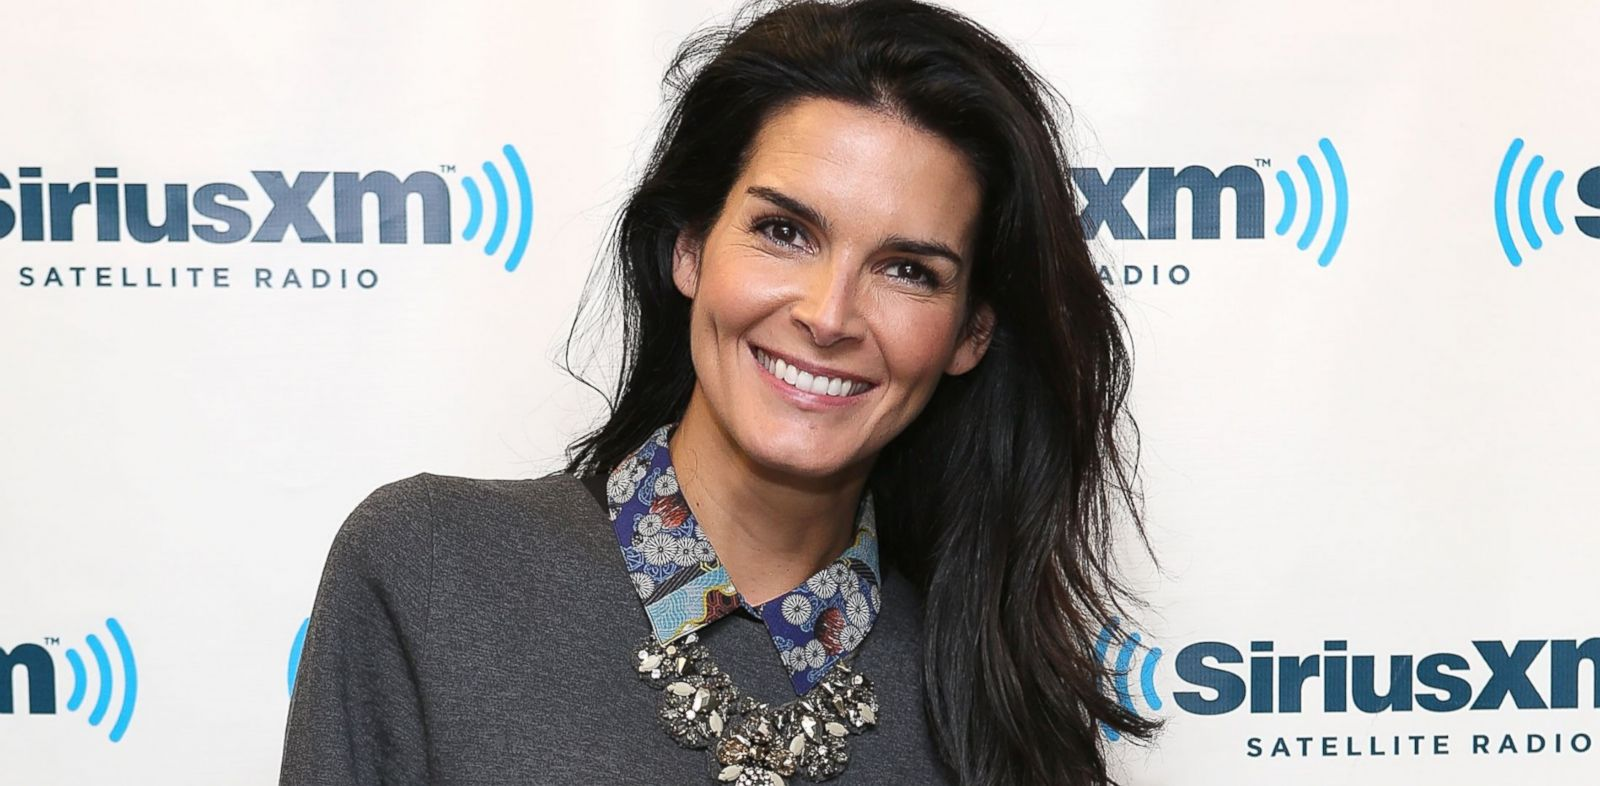 PHOTO: Angie Harmon visits at SiriusXM Studio, Jan. 29, 2014 in New York.